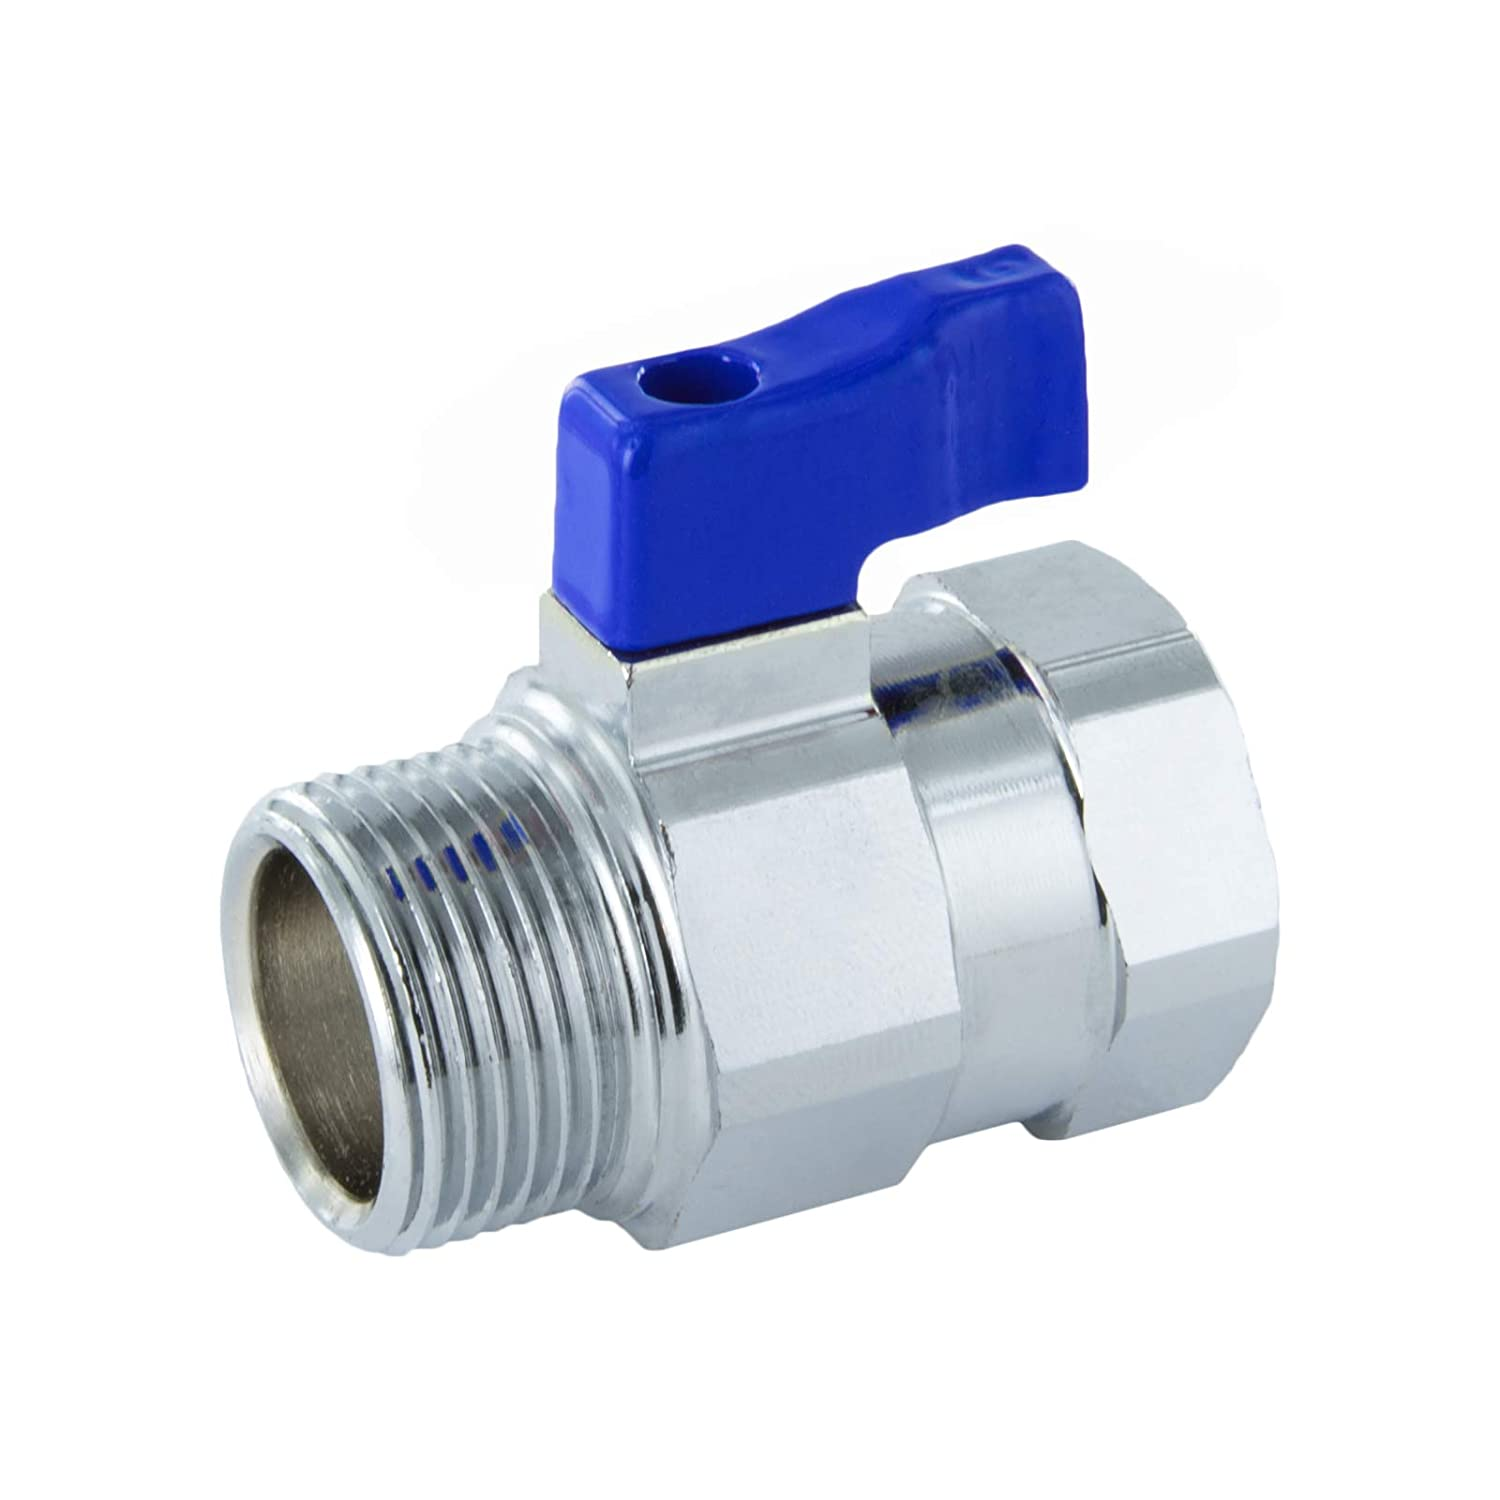 1//8 Mini ball valve with reduced bore with butterfly handle and internal//external thread